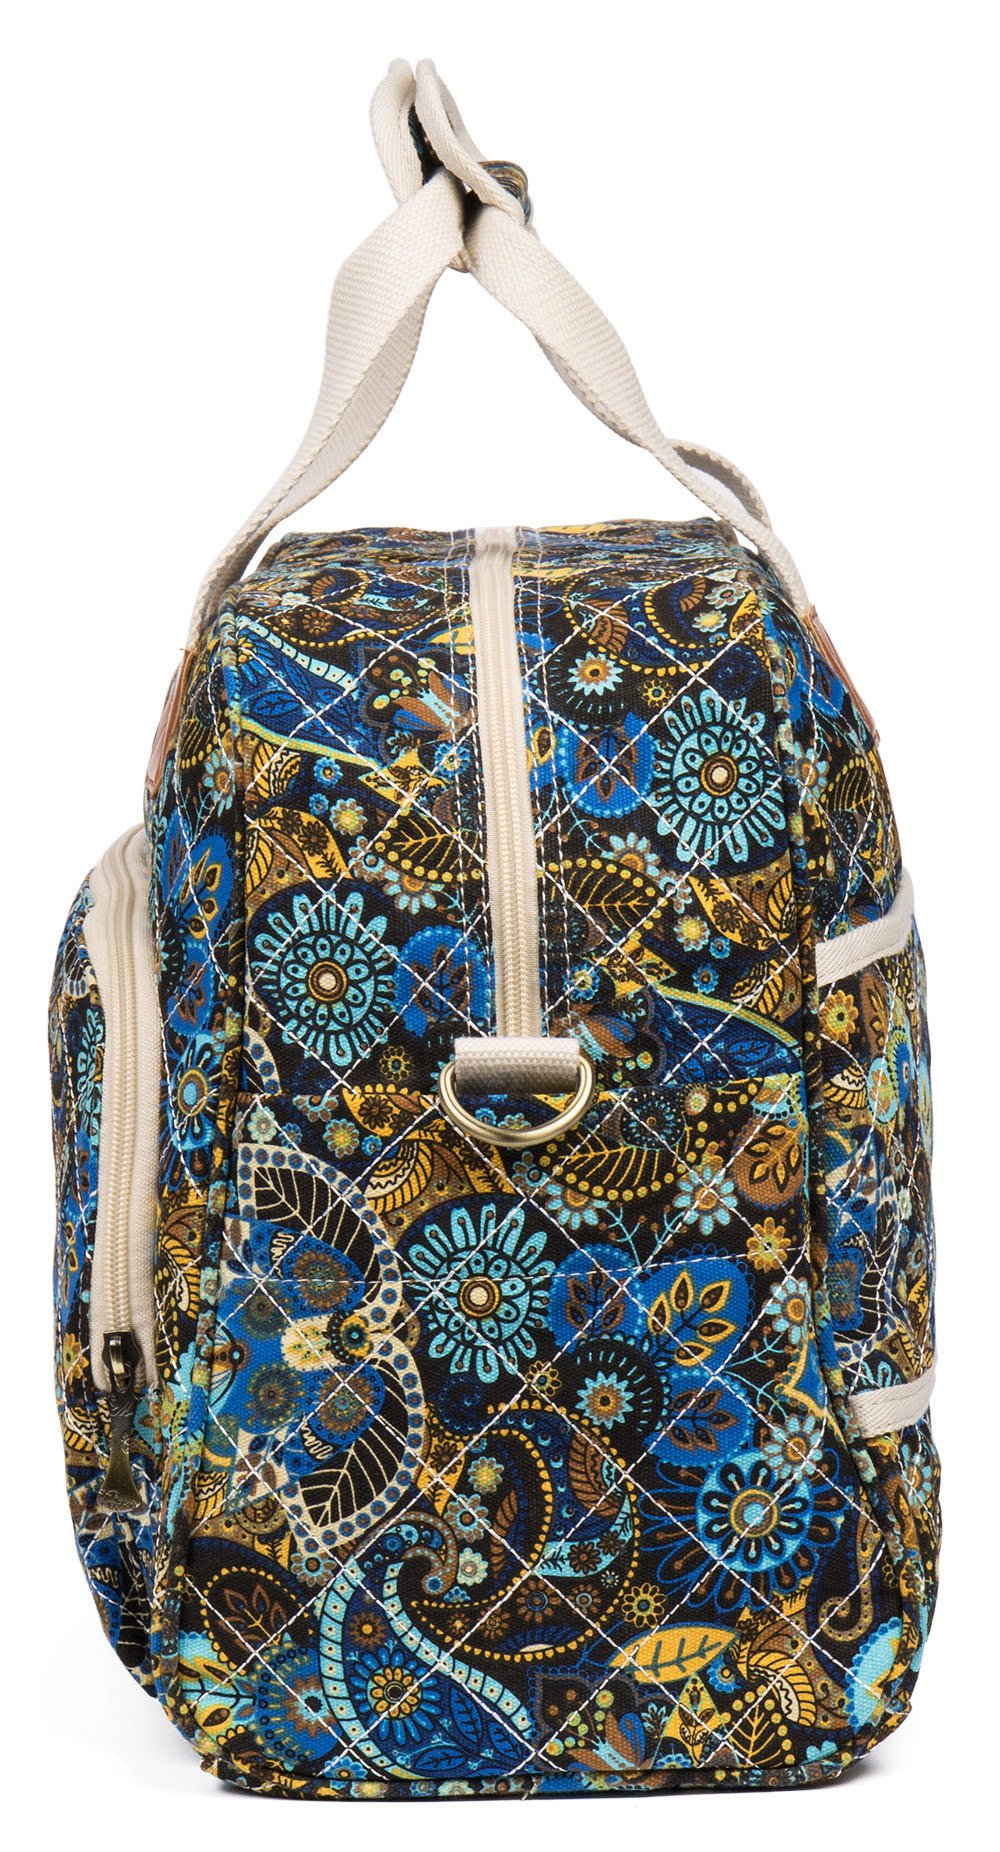 Malirona Canvas Overnight Bag Women Weekender Bag Carry On Travel Duffel Bag Floral (Black Flower) by Malirona (Image #3)